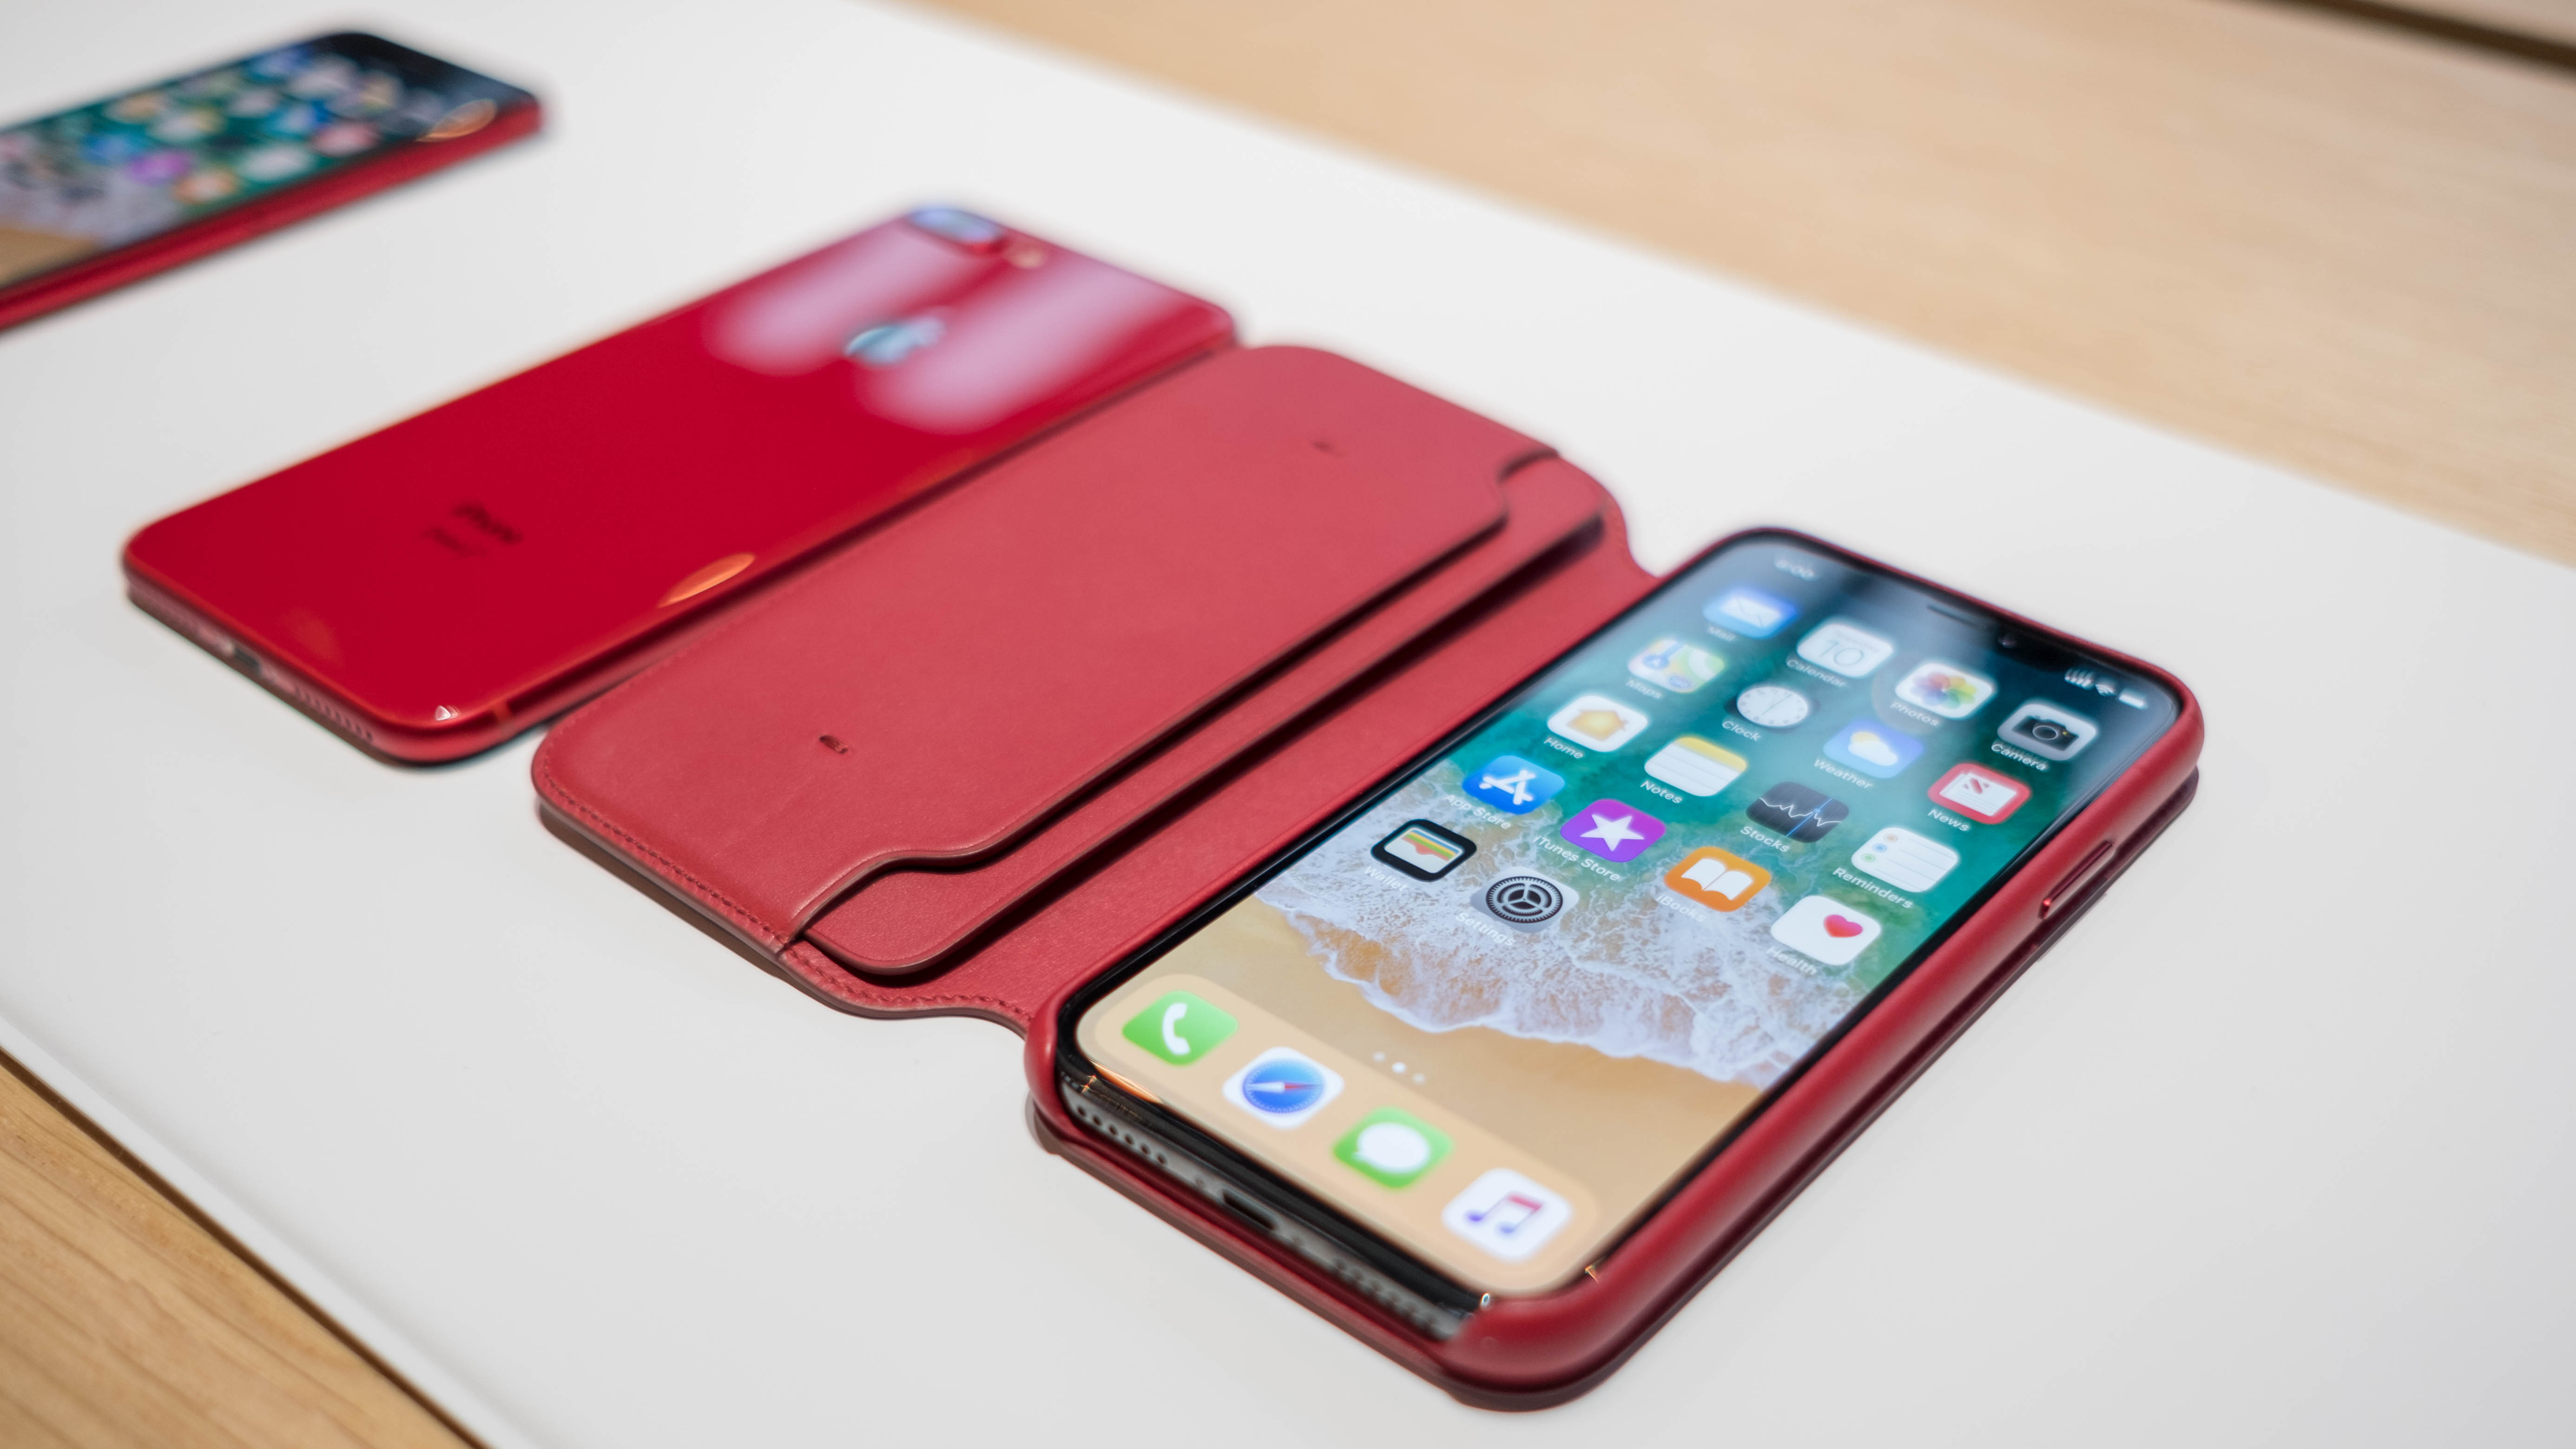 15 Product Red Iphone 8 And Iphone 8 Plus Photos Apple S New Bold